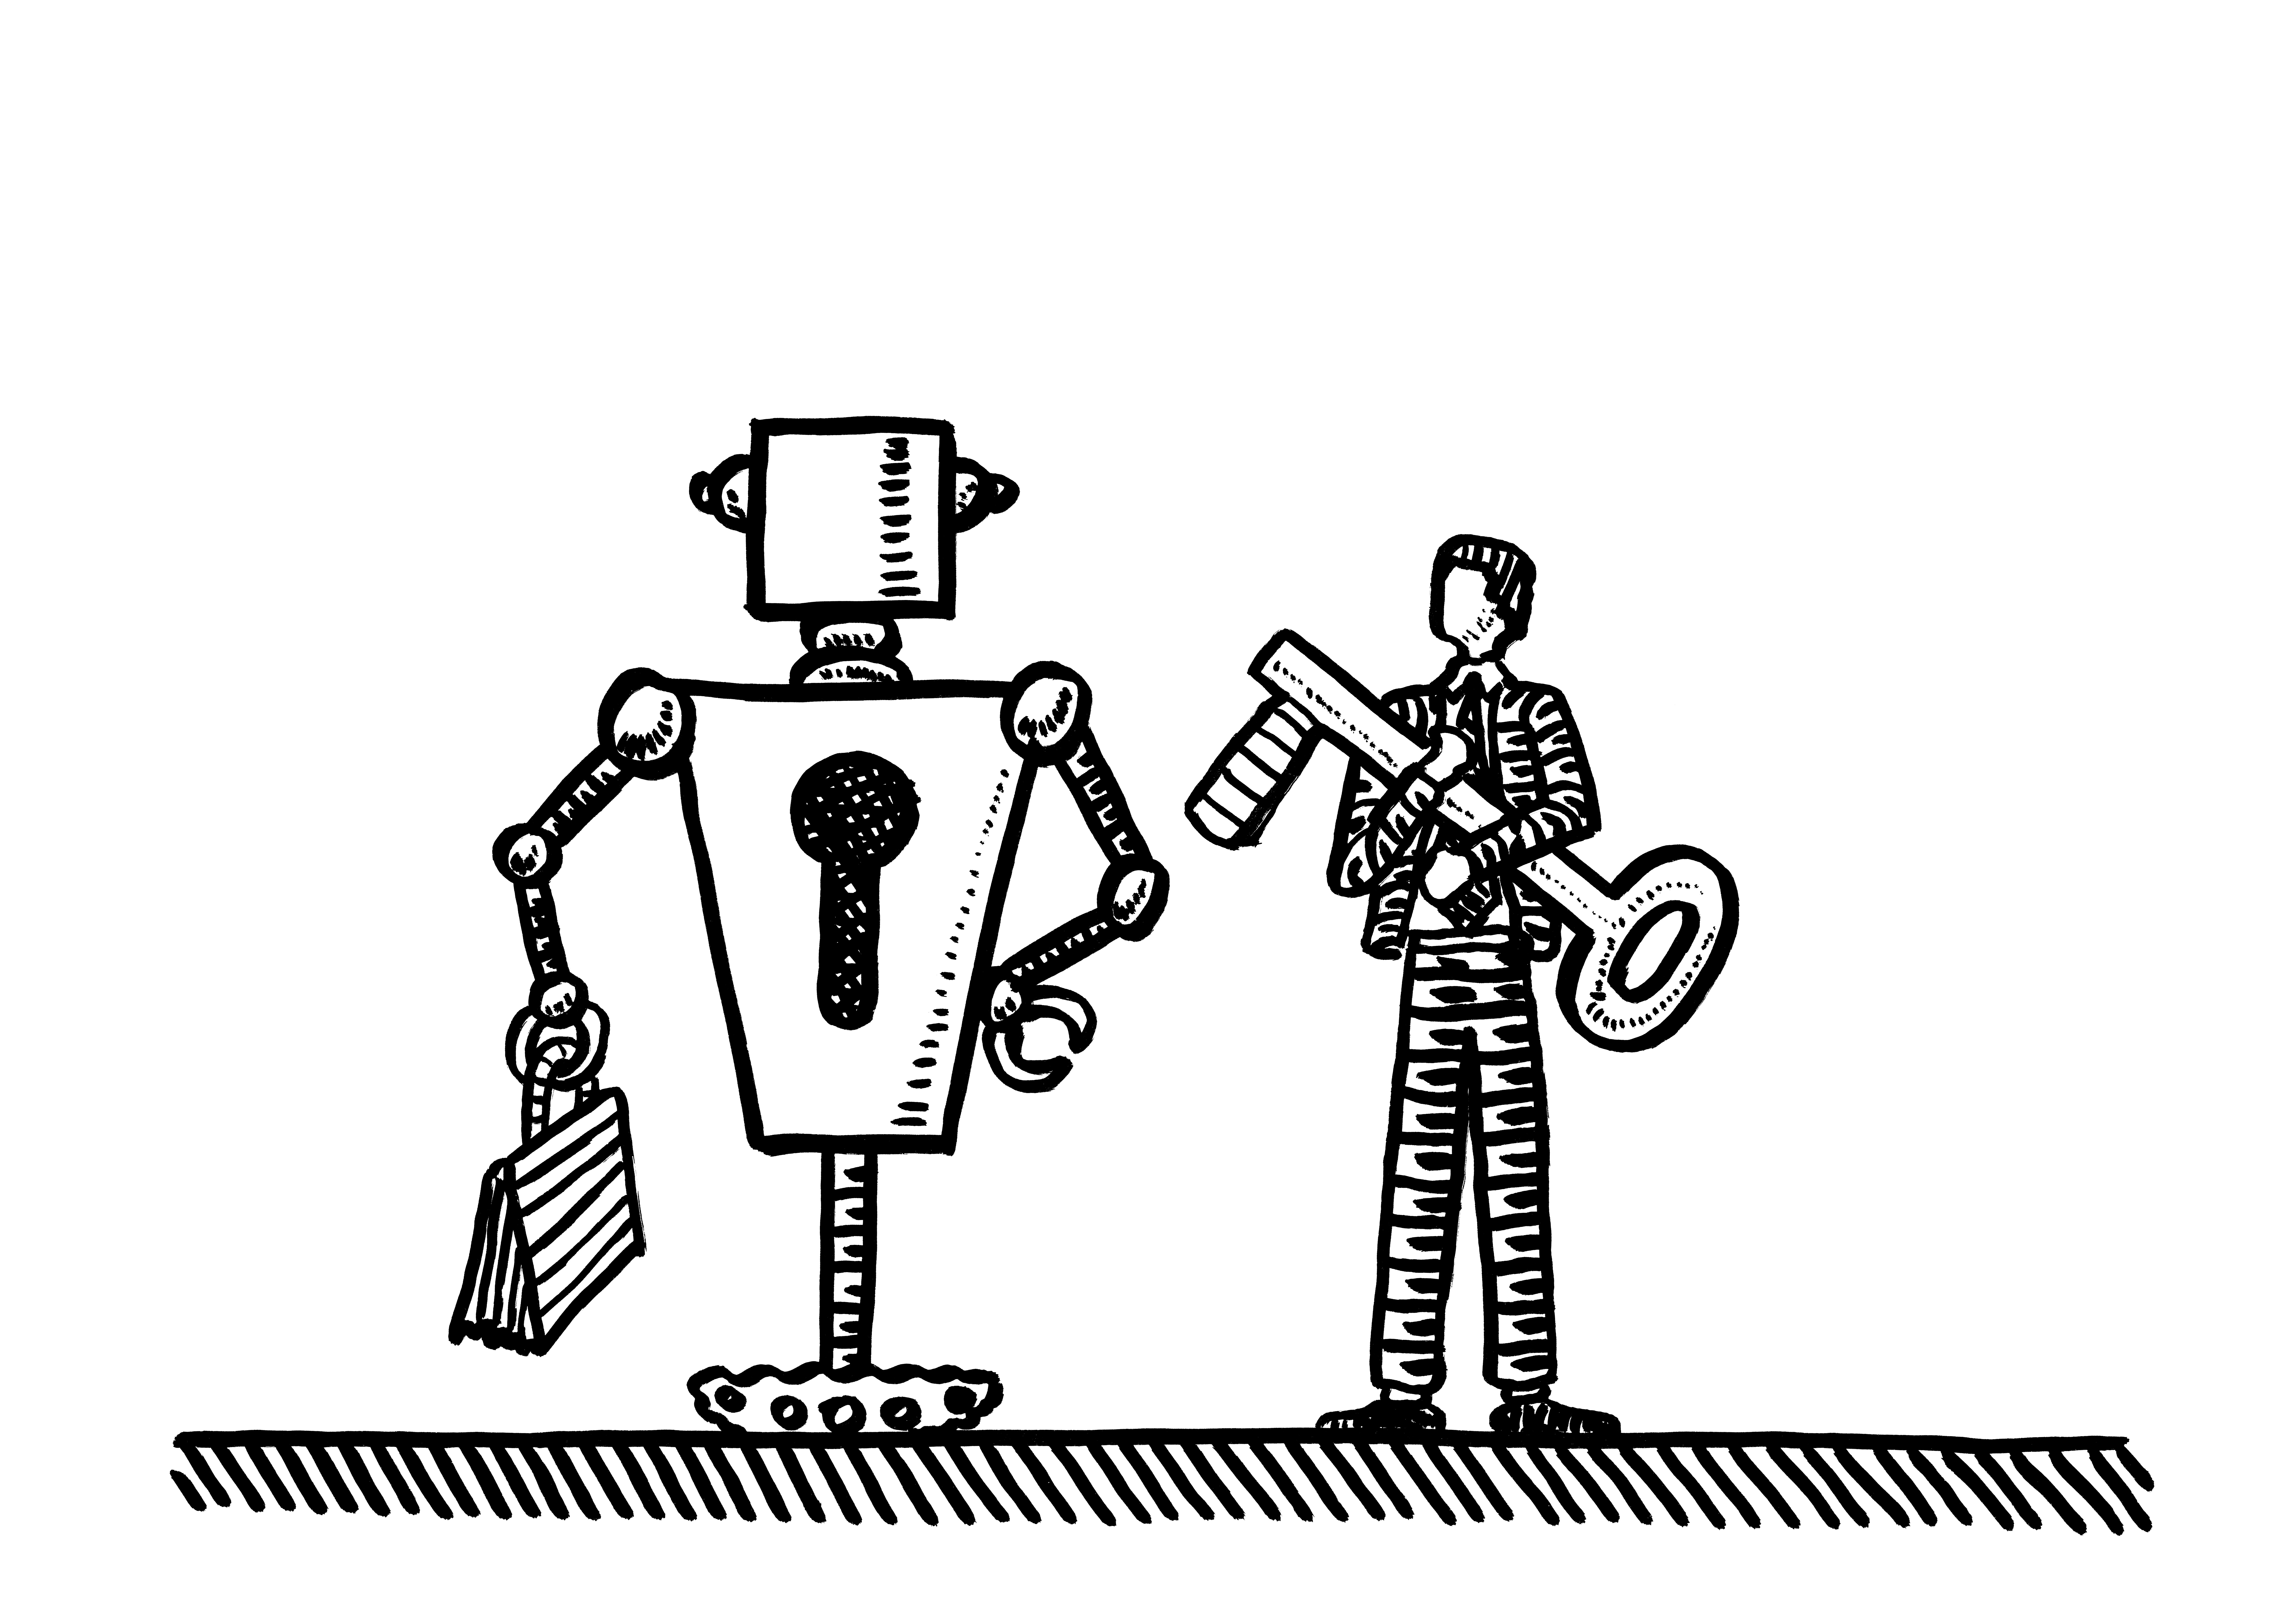 Drawn Robot With Keyhole Next To Man Holding Key